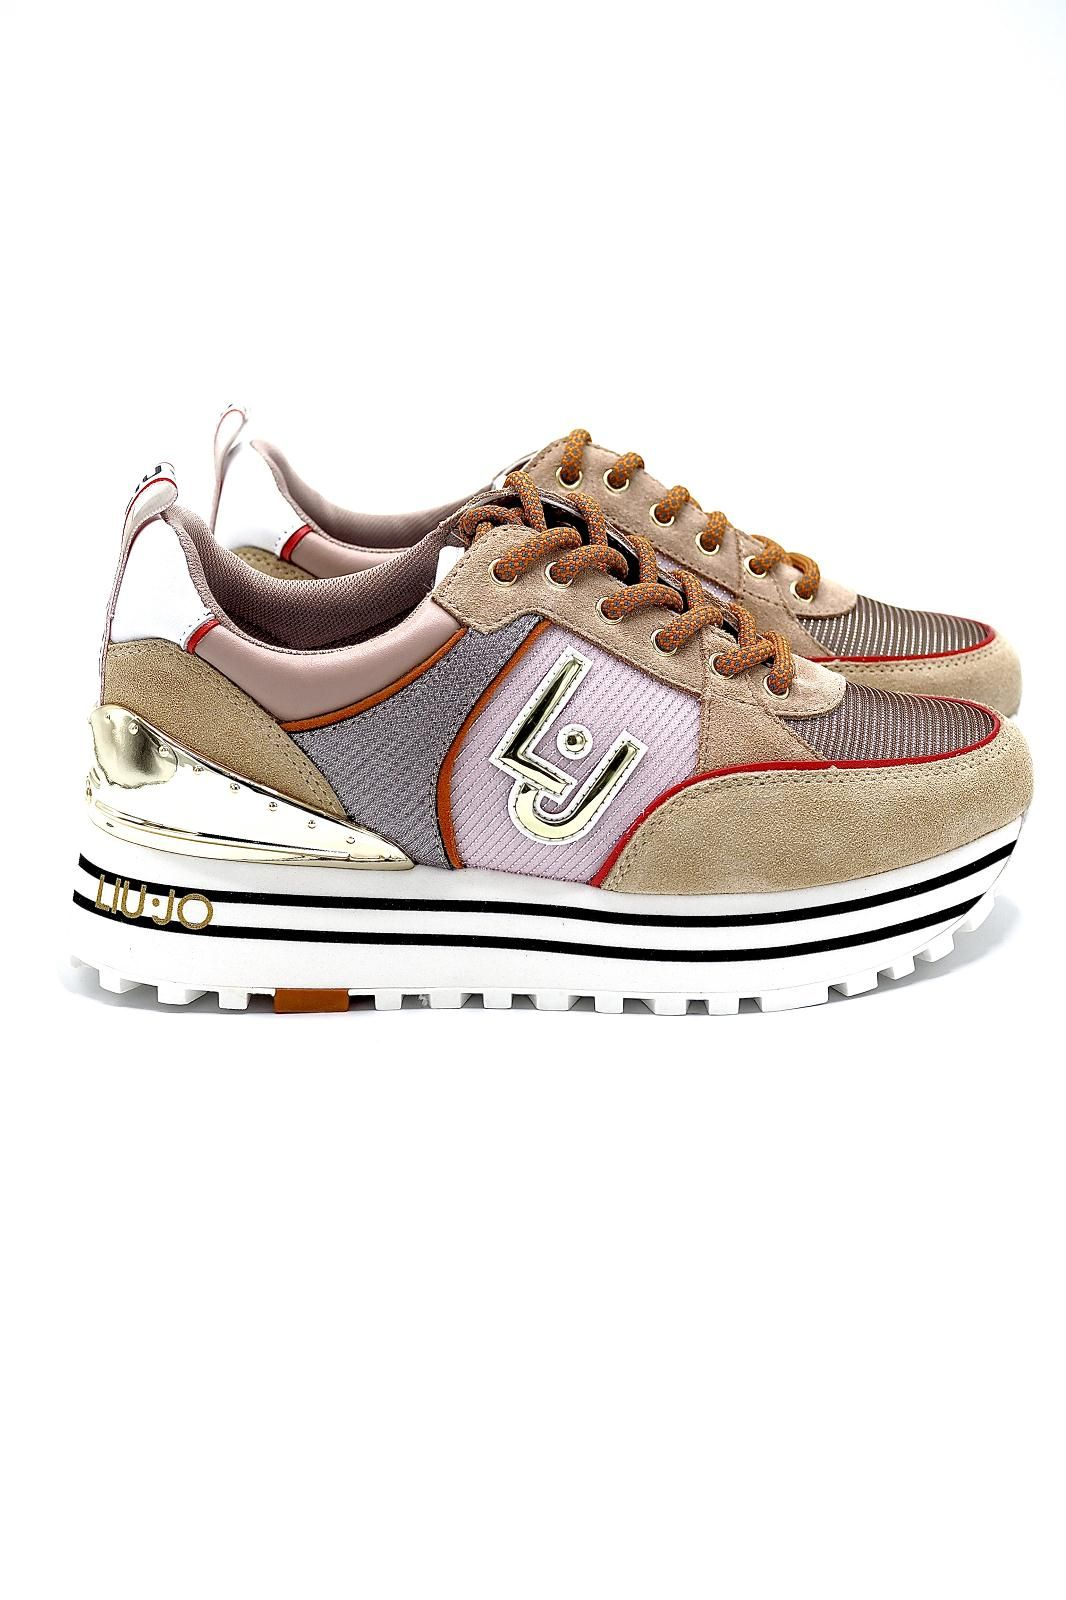 Liu Jo Chaussures basket bas Nude femmes (Liu Jo Shoe-Runner GS nude - MAXI WONDER nude/beige) - Marine | Much more than shoes